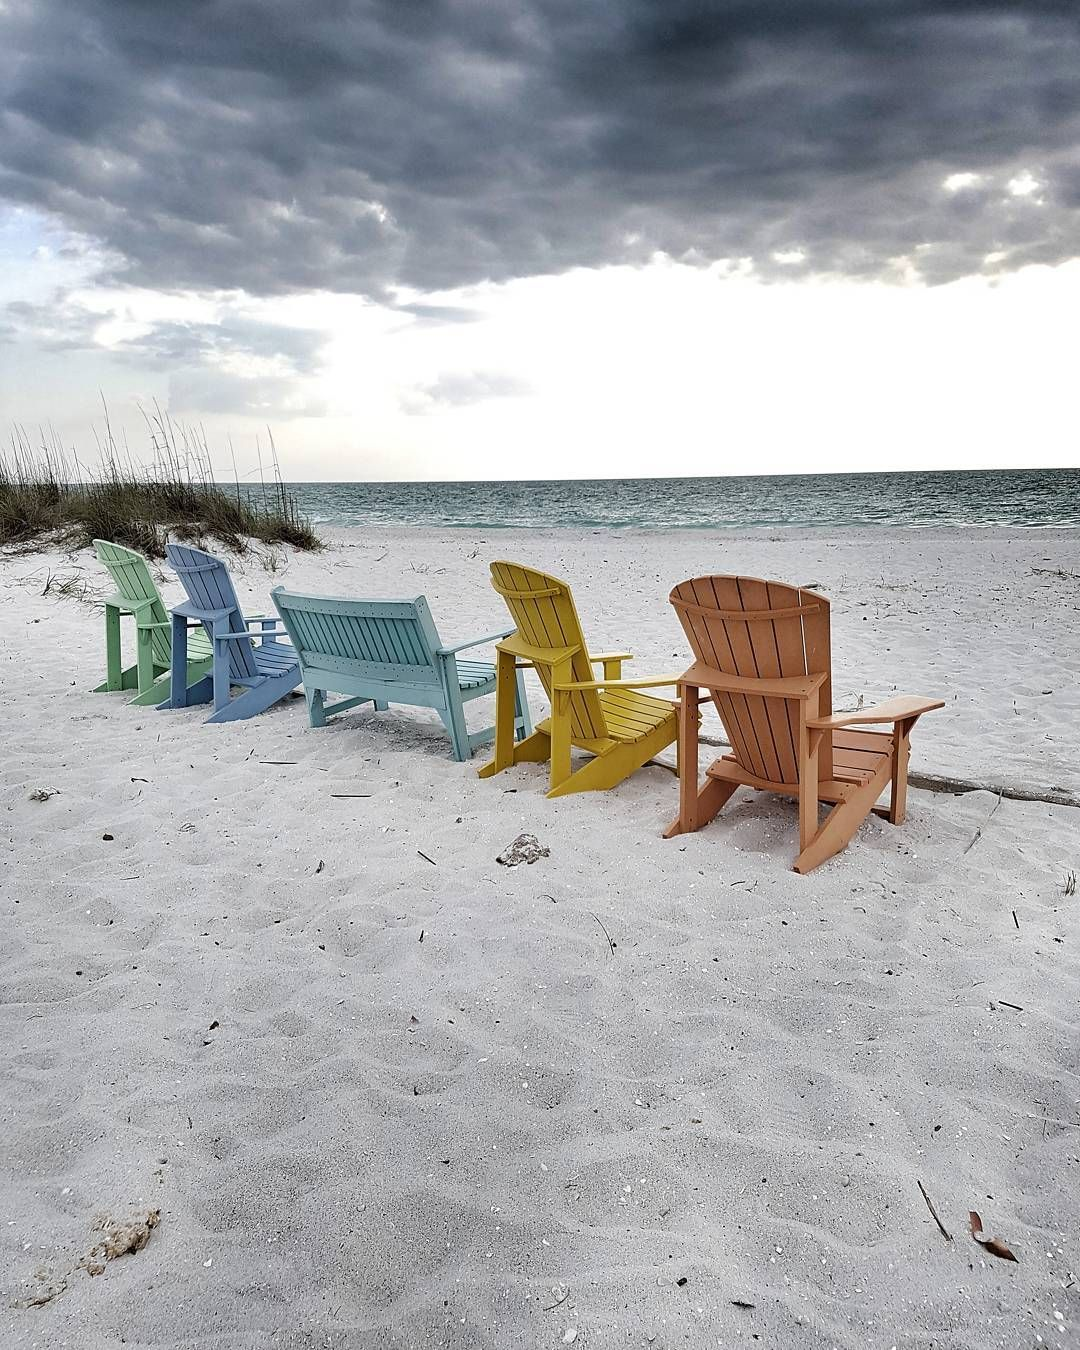 25 Surreal Towns In Florida That You Need To Visit This ...